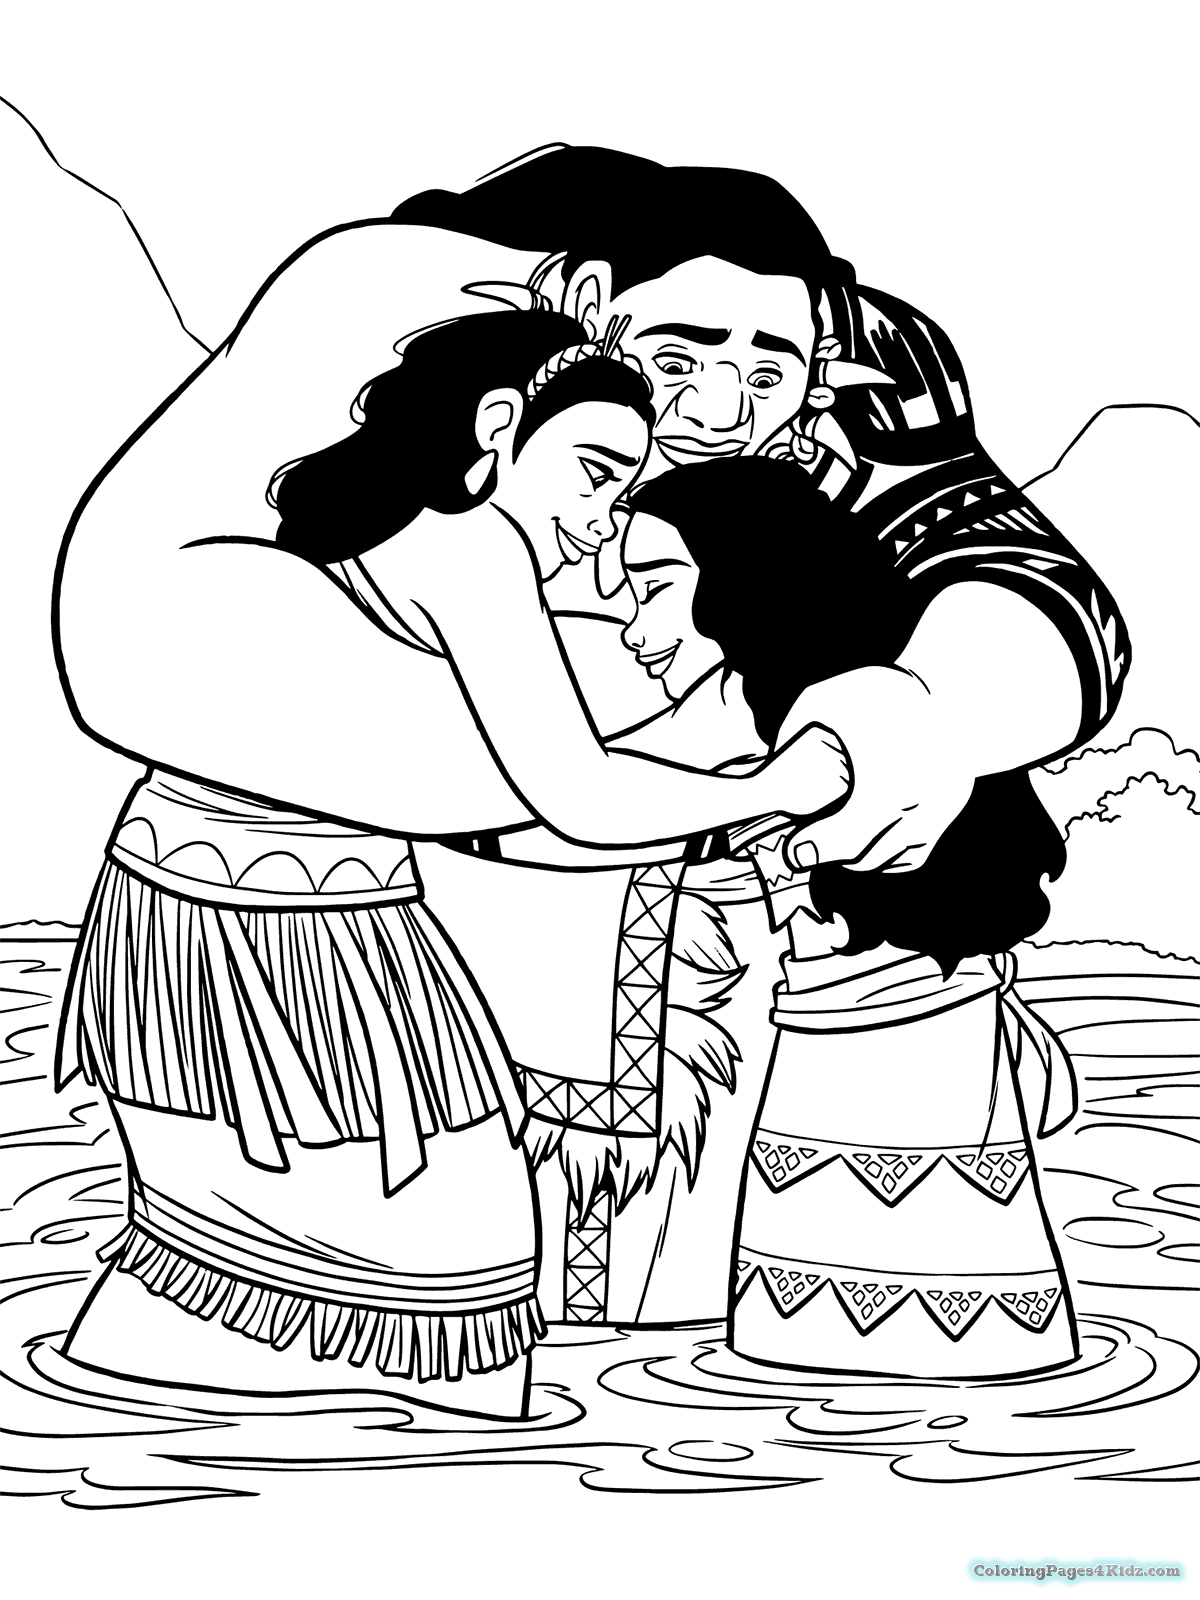 Moana Coloring Pages For Kids At Getdrawings Com Free For Personal